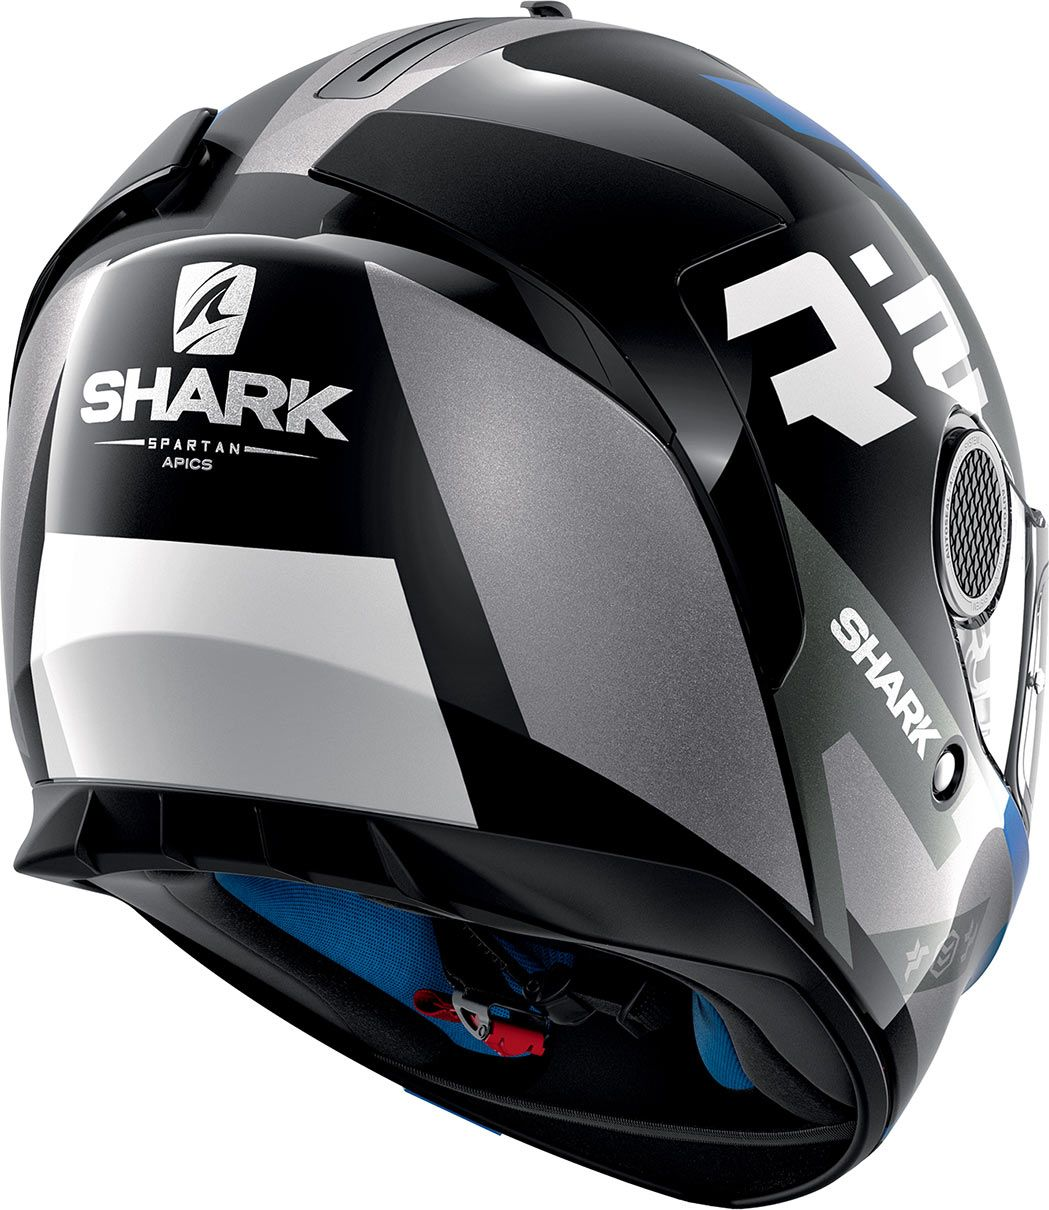 shark spartan l 39 int gral touring r invent casques deux roues bikes helmets pinterest. Black Bedroom Furniture Sets. Home Design Ideas